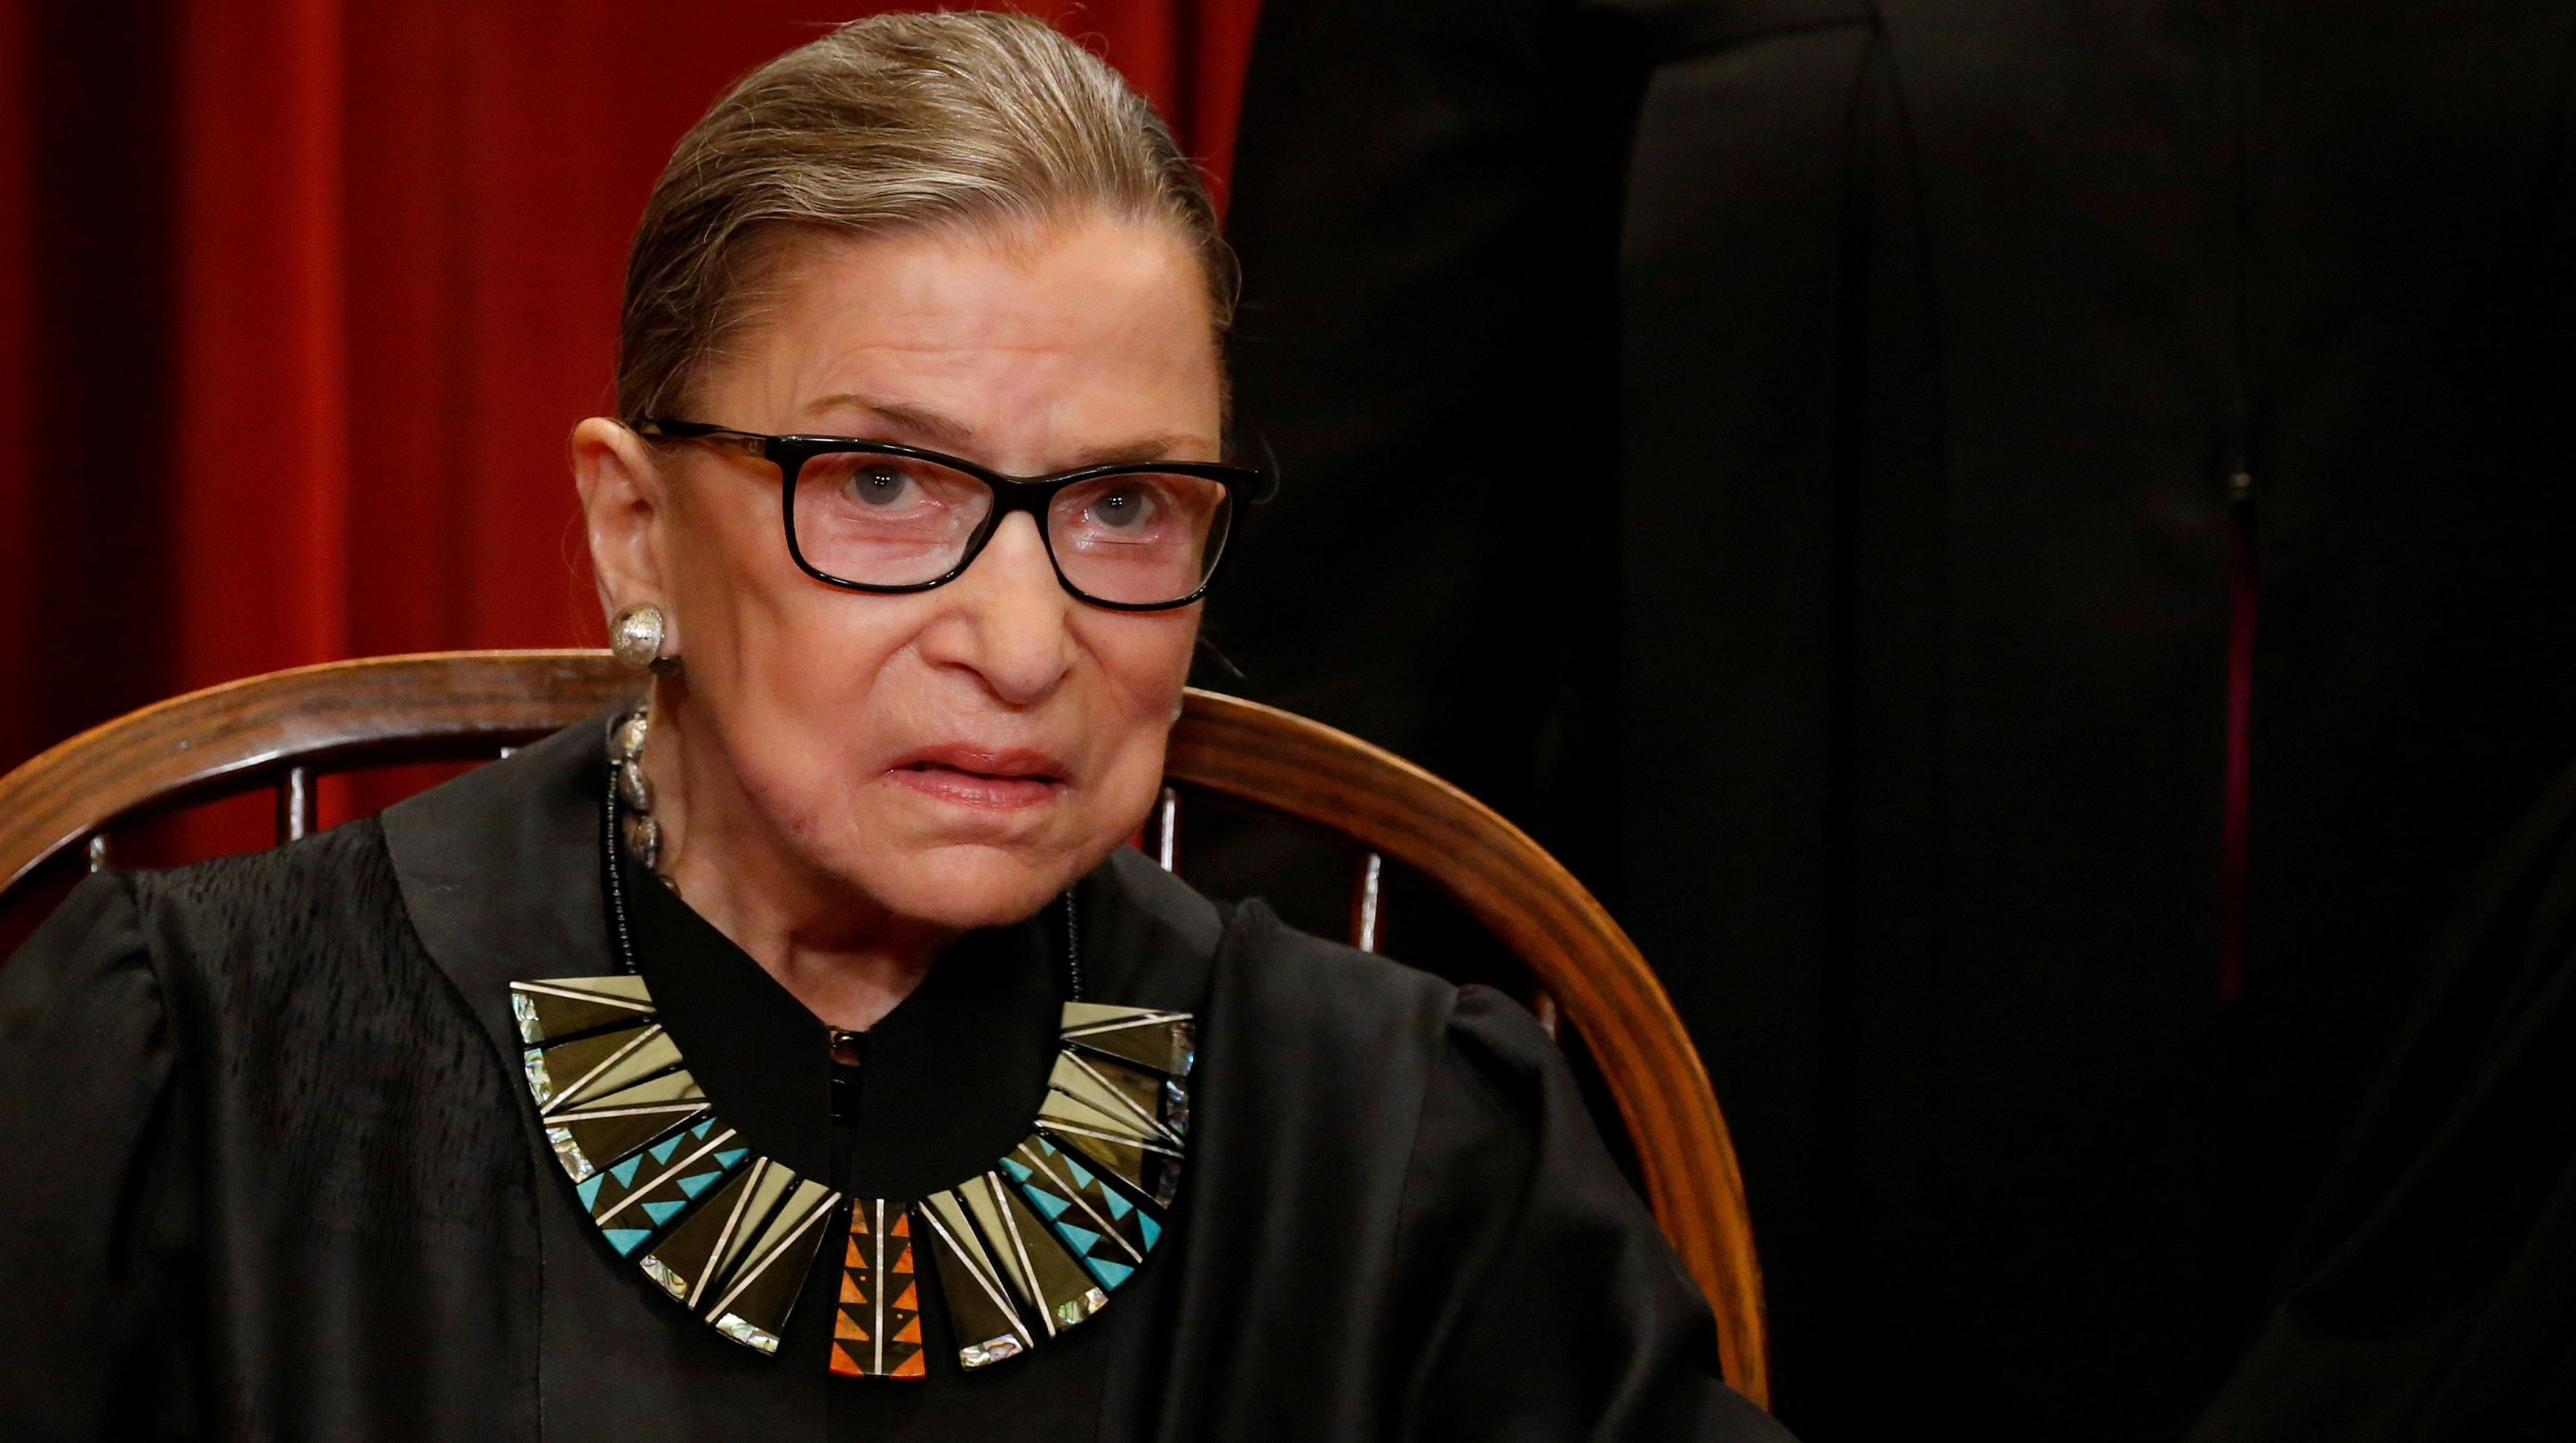 Justice Ruth Bader Ginsburg Had 2 Cancerous Growths Removed From Lungs